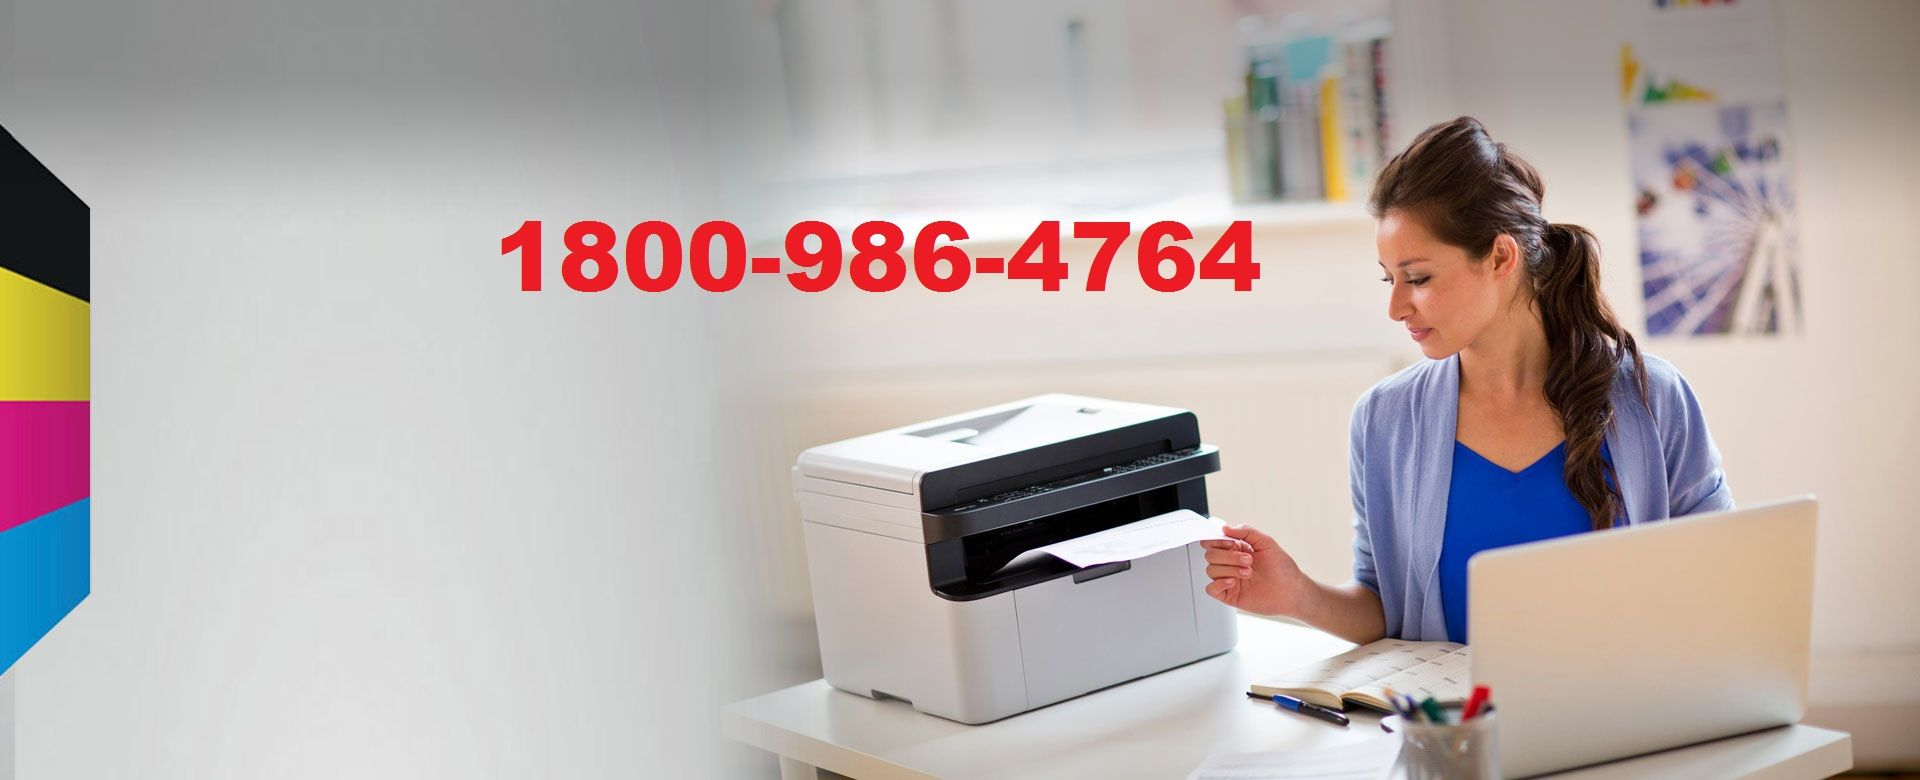 Contact Hp Technical Support by dialing +1800-986-4764 to